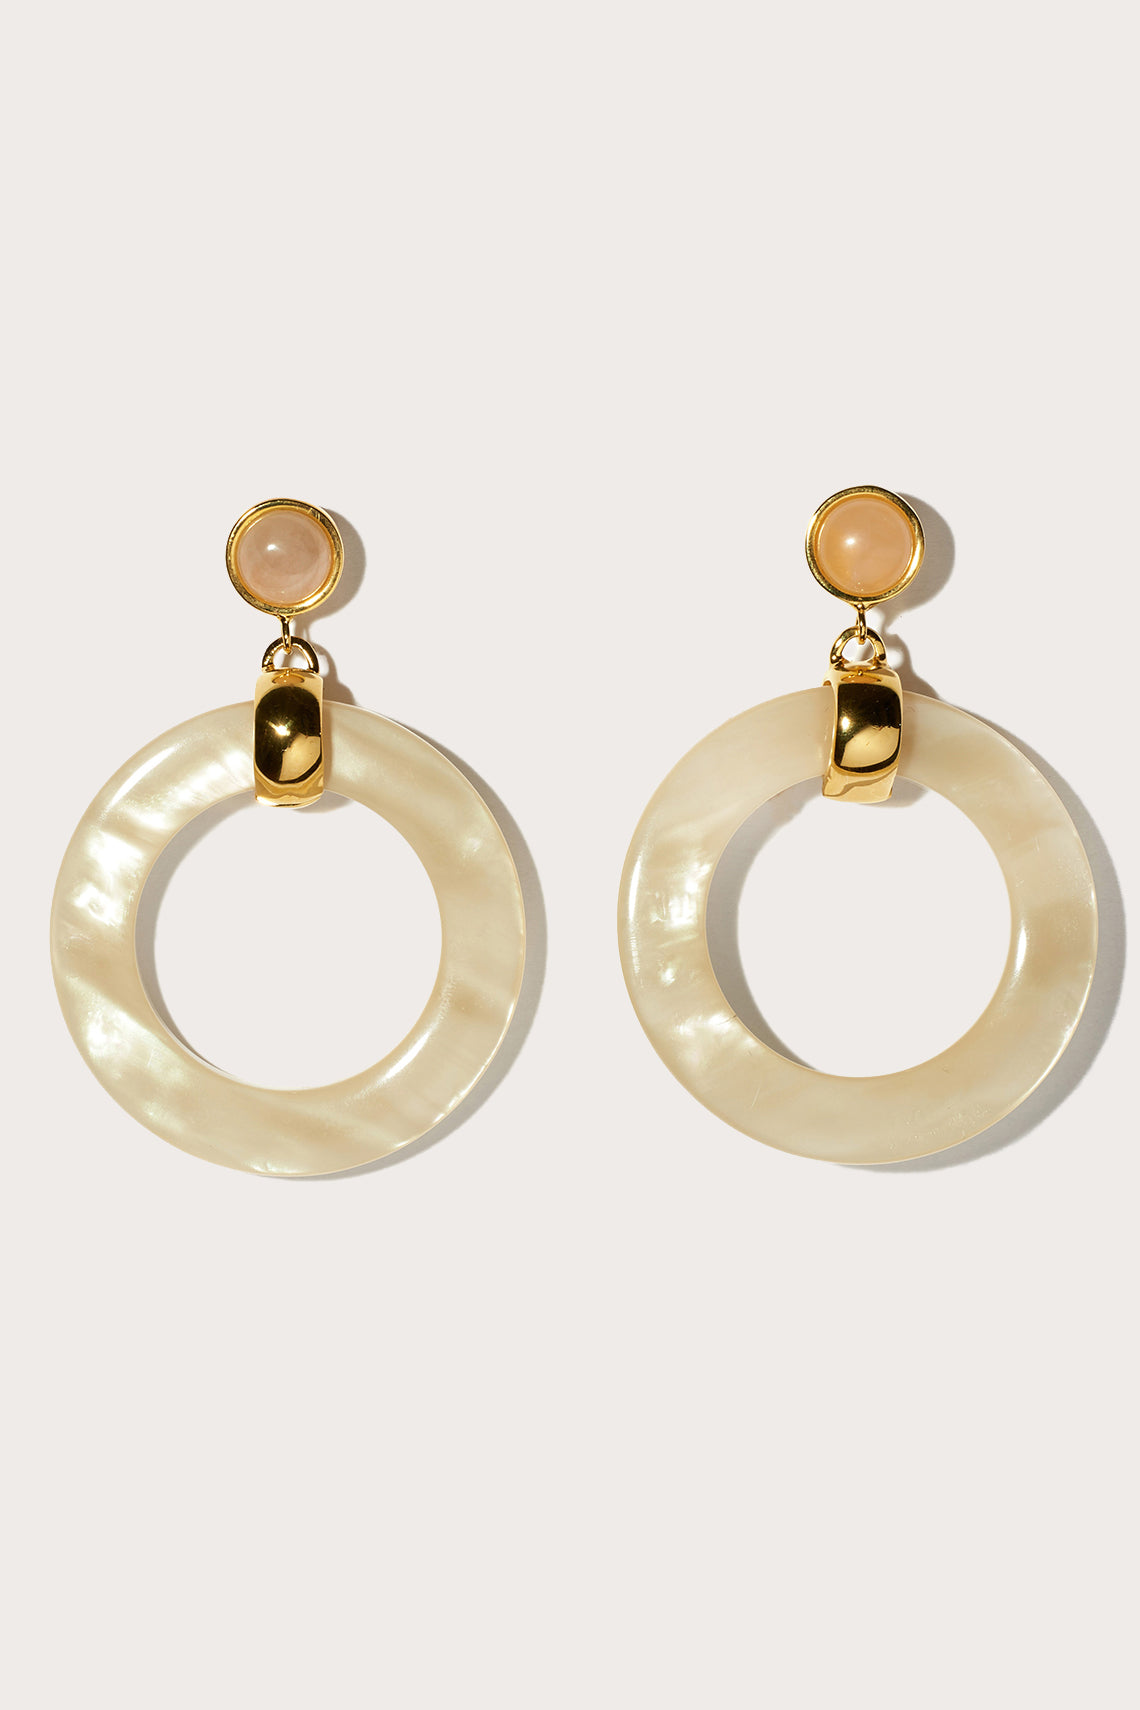 Lizzie Fortunato - sun bleached hoops, faux pearl